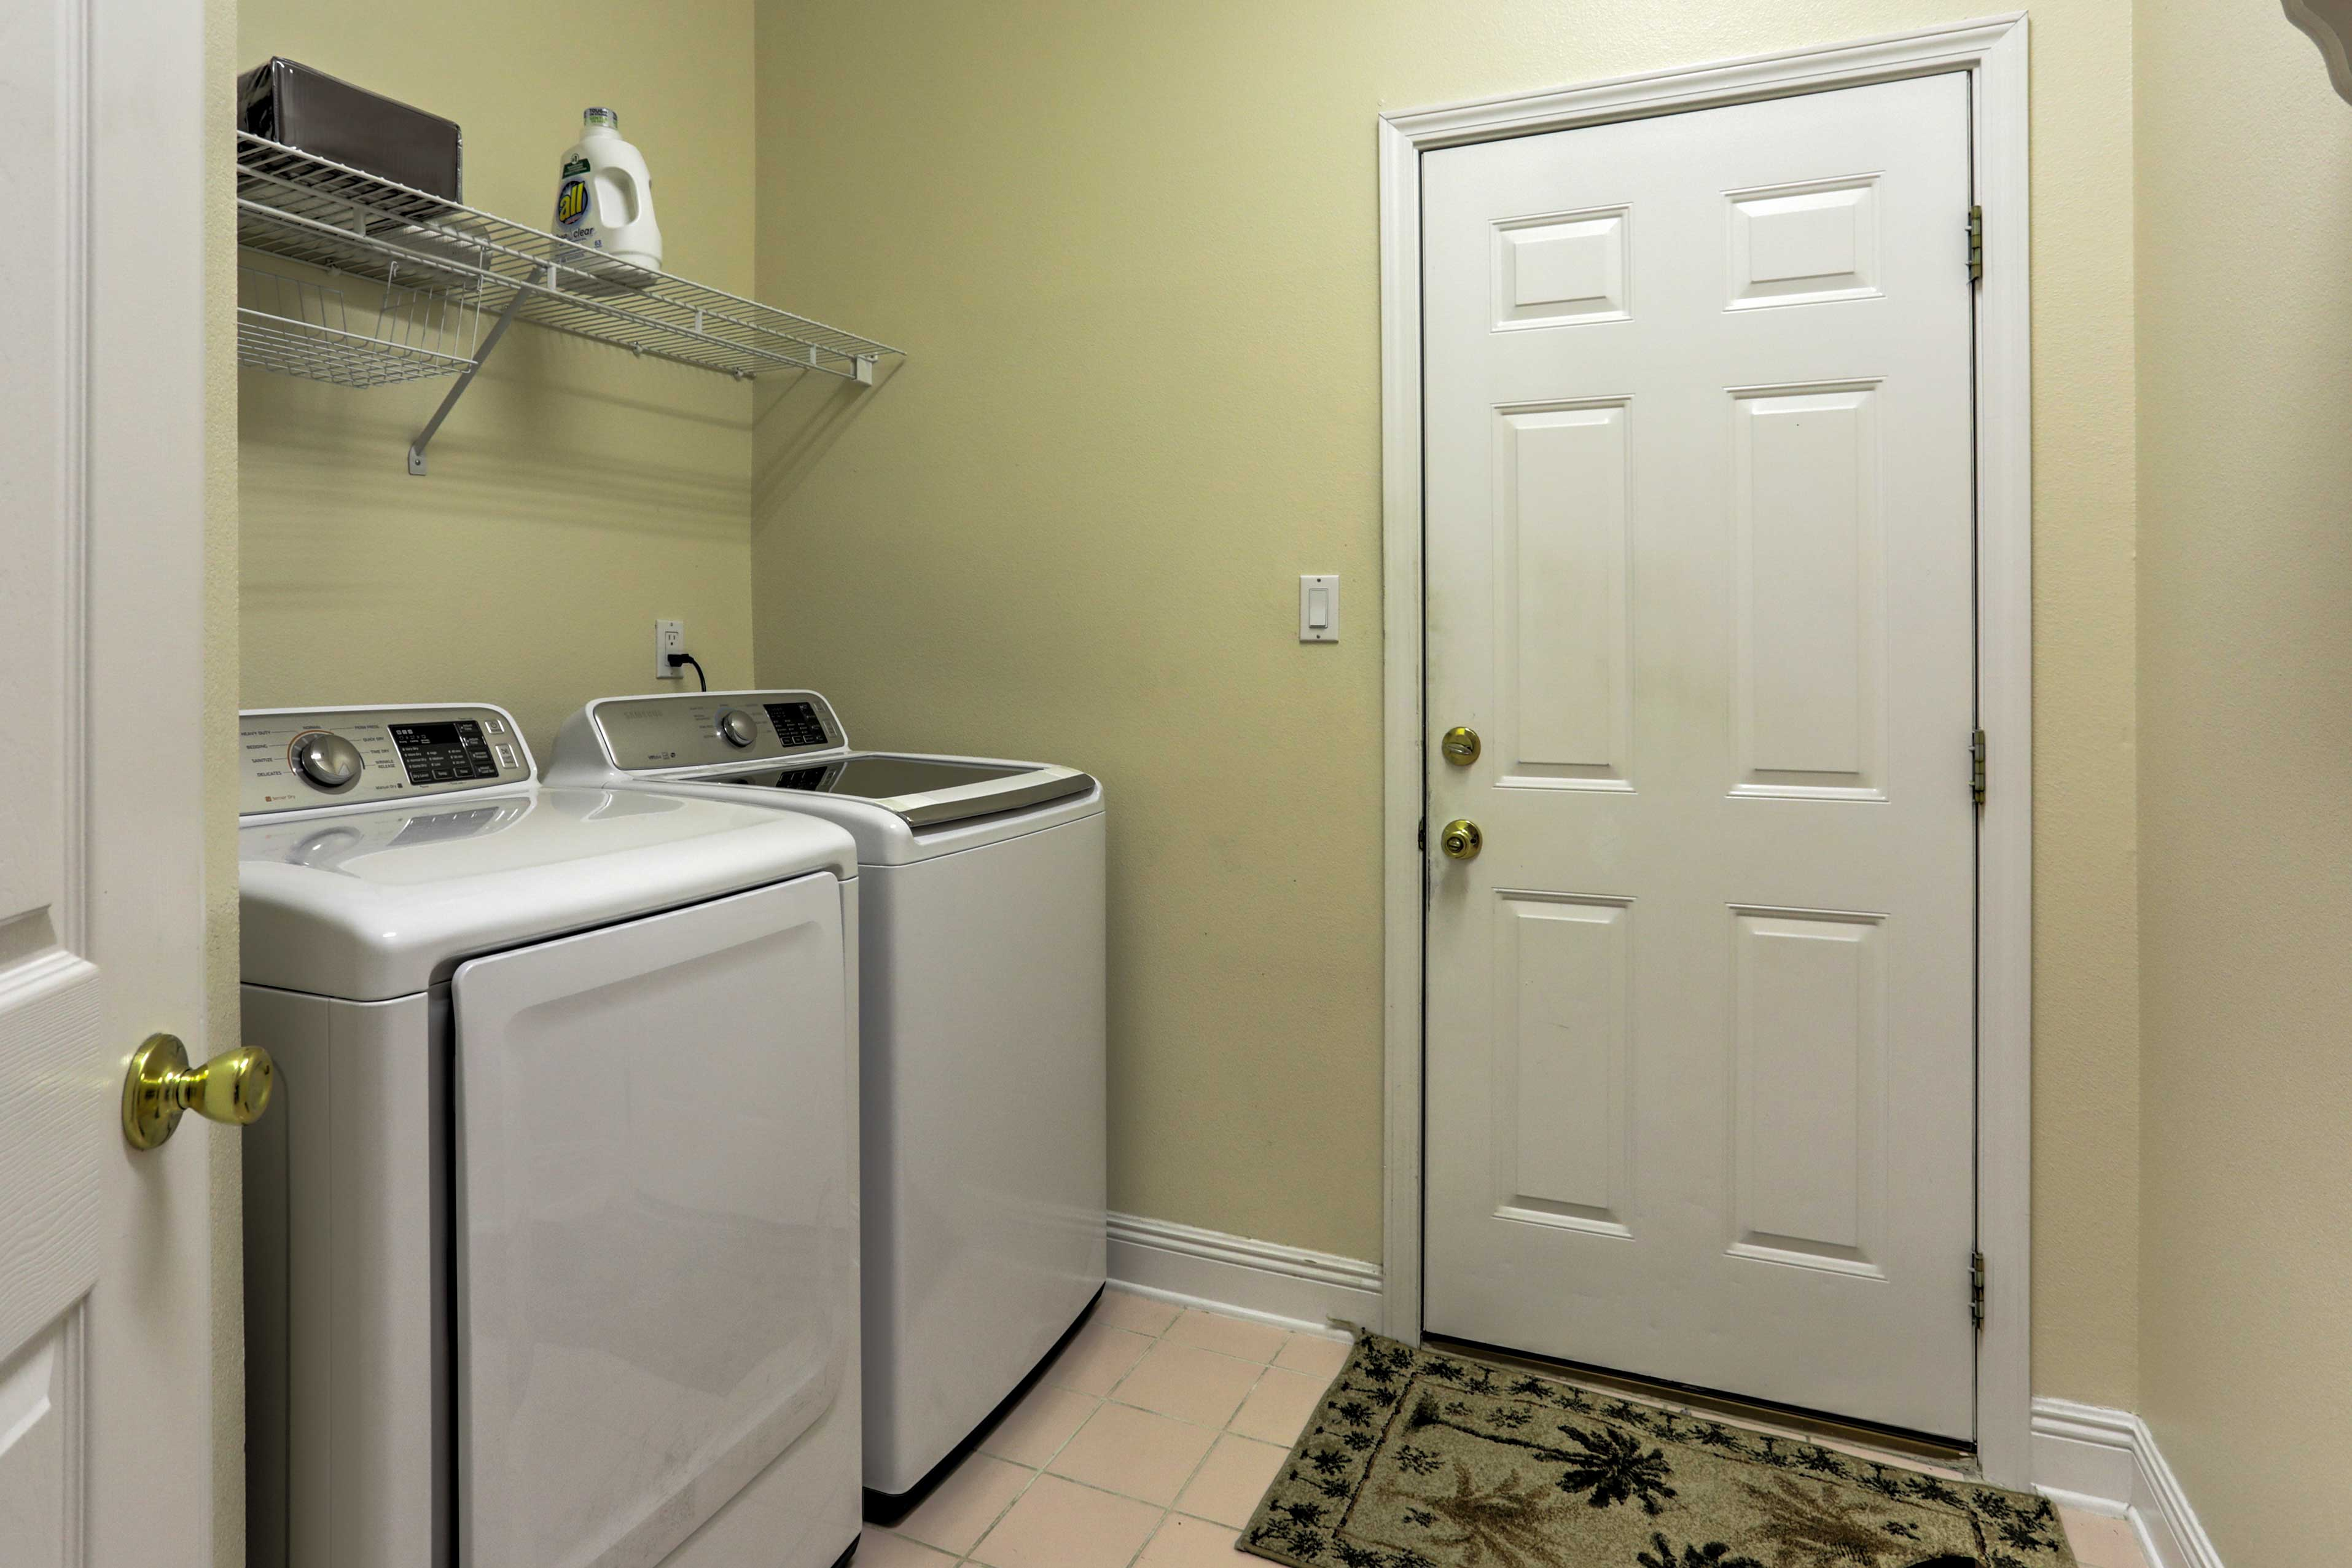 Keep your clothes clean by utilizing the in-unit laundry machines.